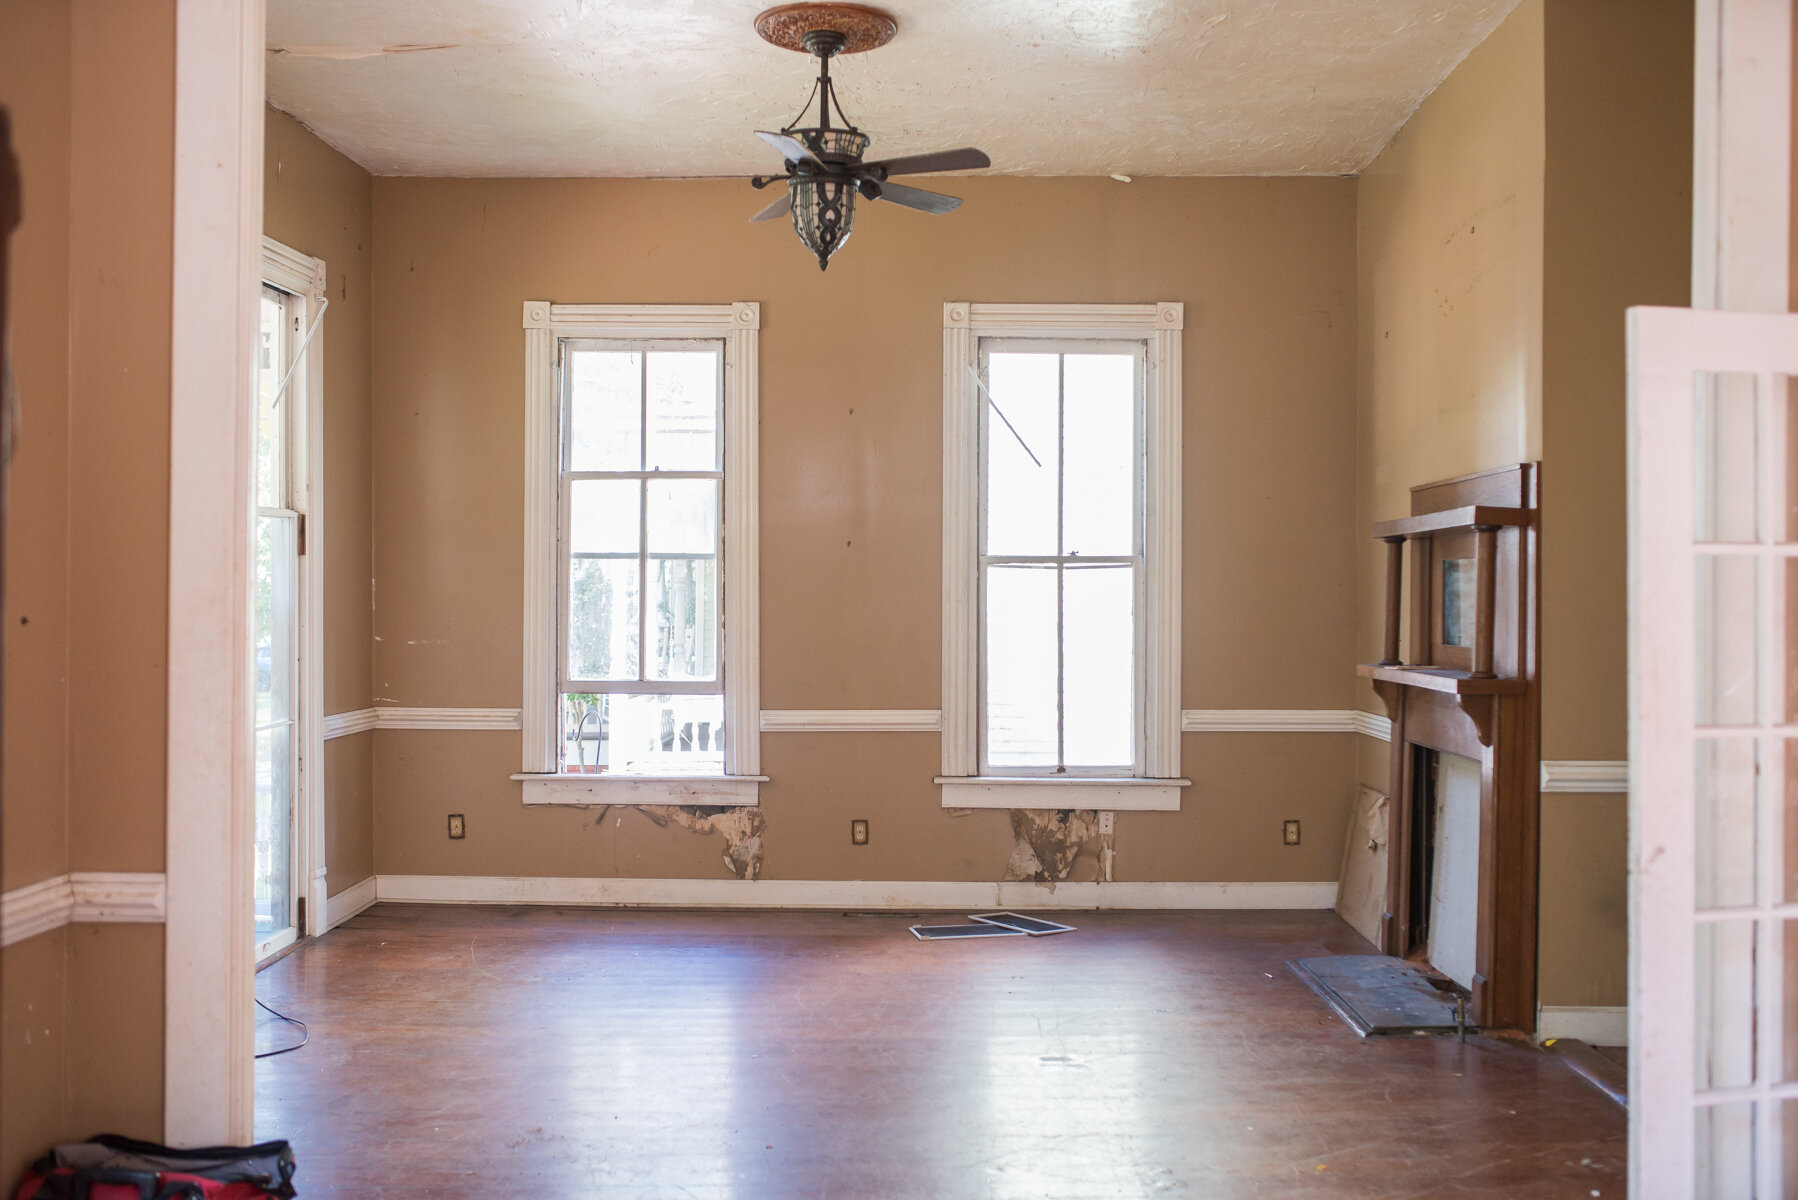 This is the room directly to the left when you walk in. We'll replace this opening with the original wall that was there, with french doors and a transom above. We'll use this as the playroom until the kids are older, when it will become more of a formal living space.